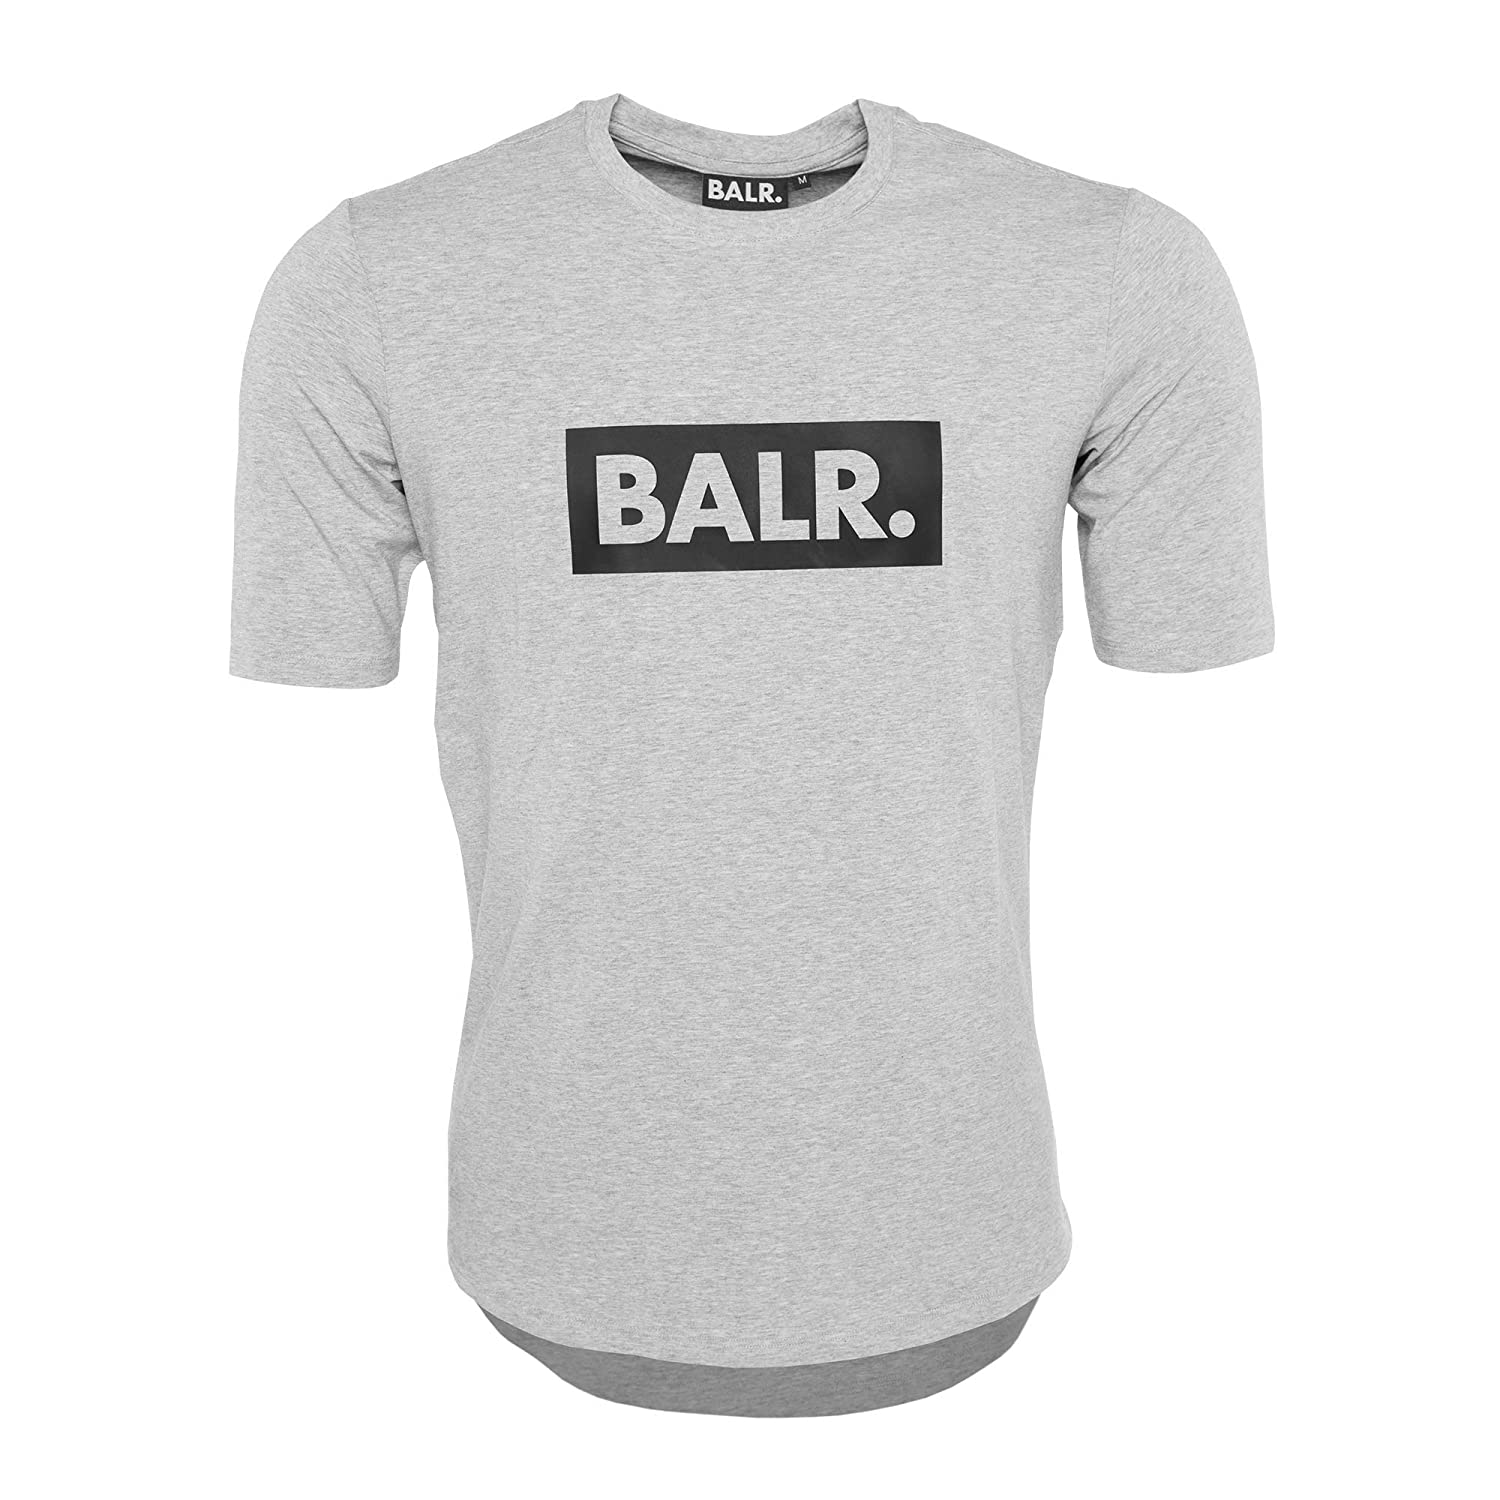 official select for genuine a few days away BALR Club Shirt Grey: Amazon.ca: Clothing & Accessories